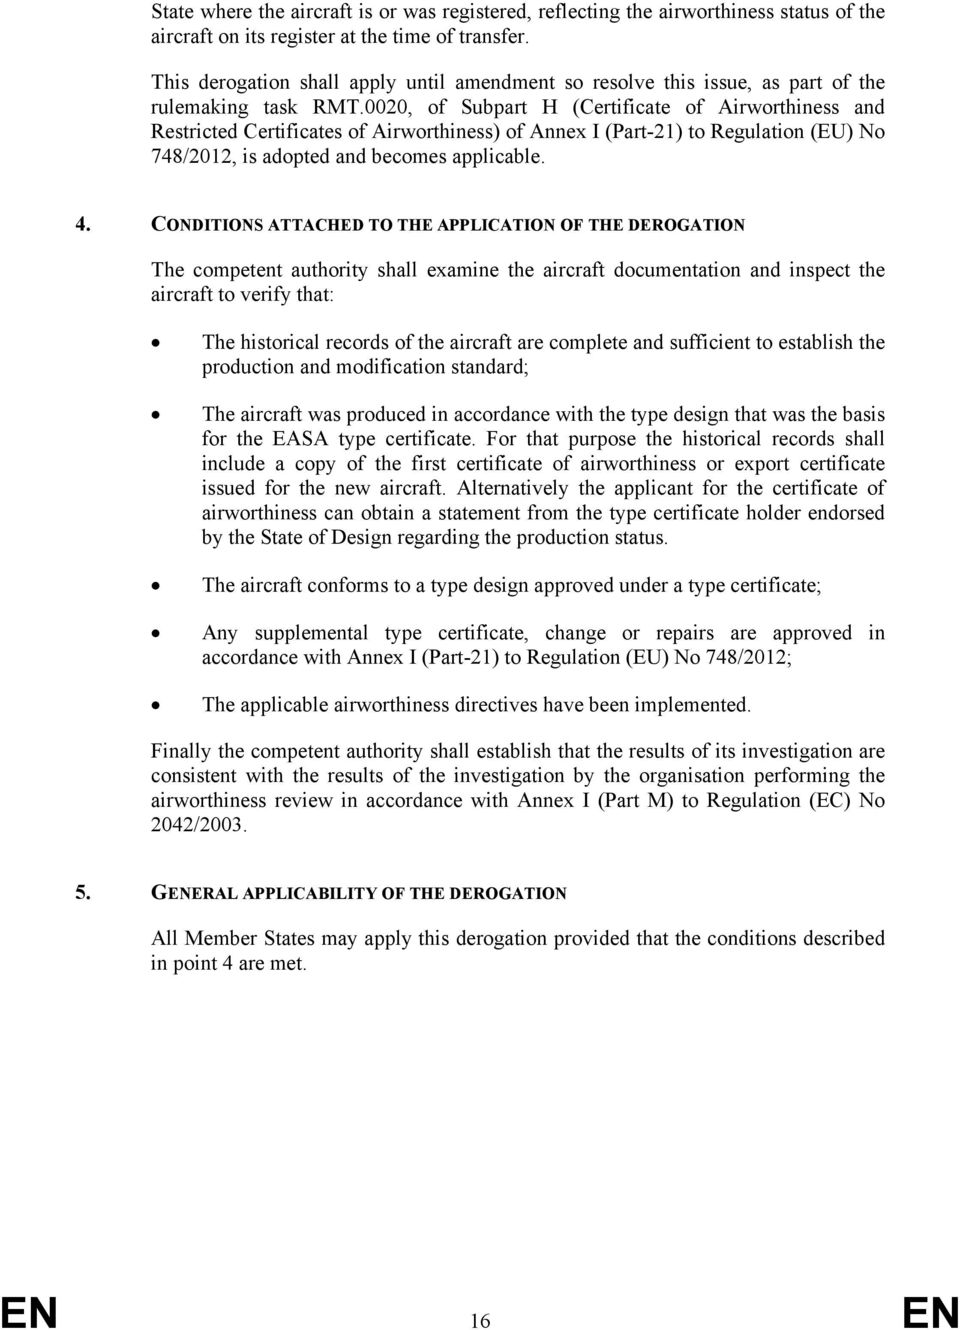 0020, of Subpart H (Certificate of Airworthiness and Restricted Certificates of Airworthiness) of Annex I (Part-21) to Regulation (EU) No 748/2012, is adopted and becomes applicable. 4.